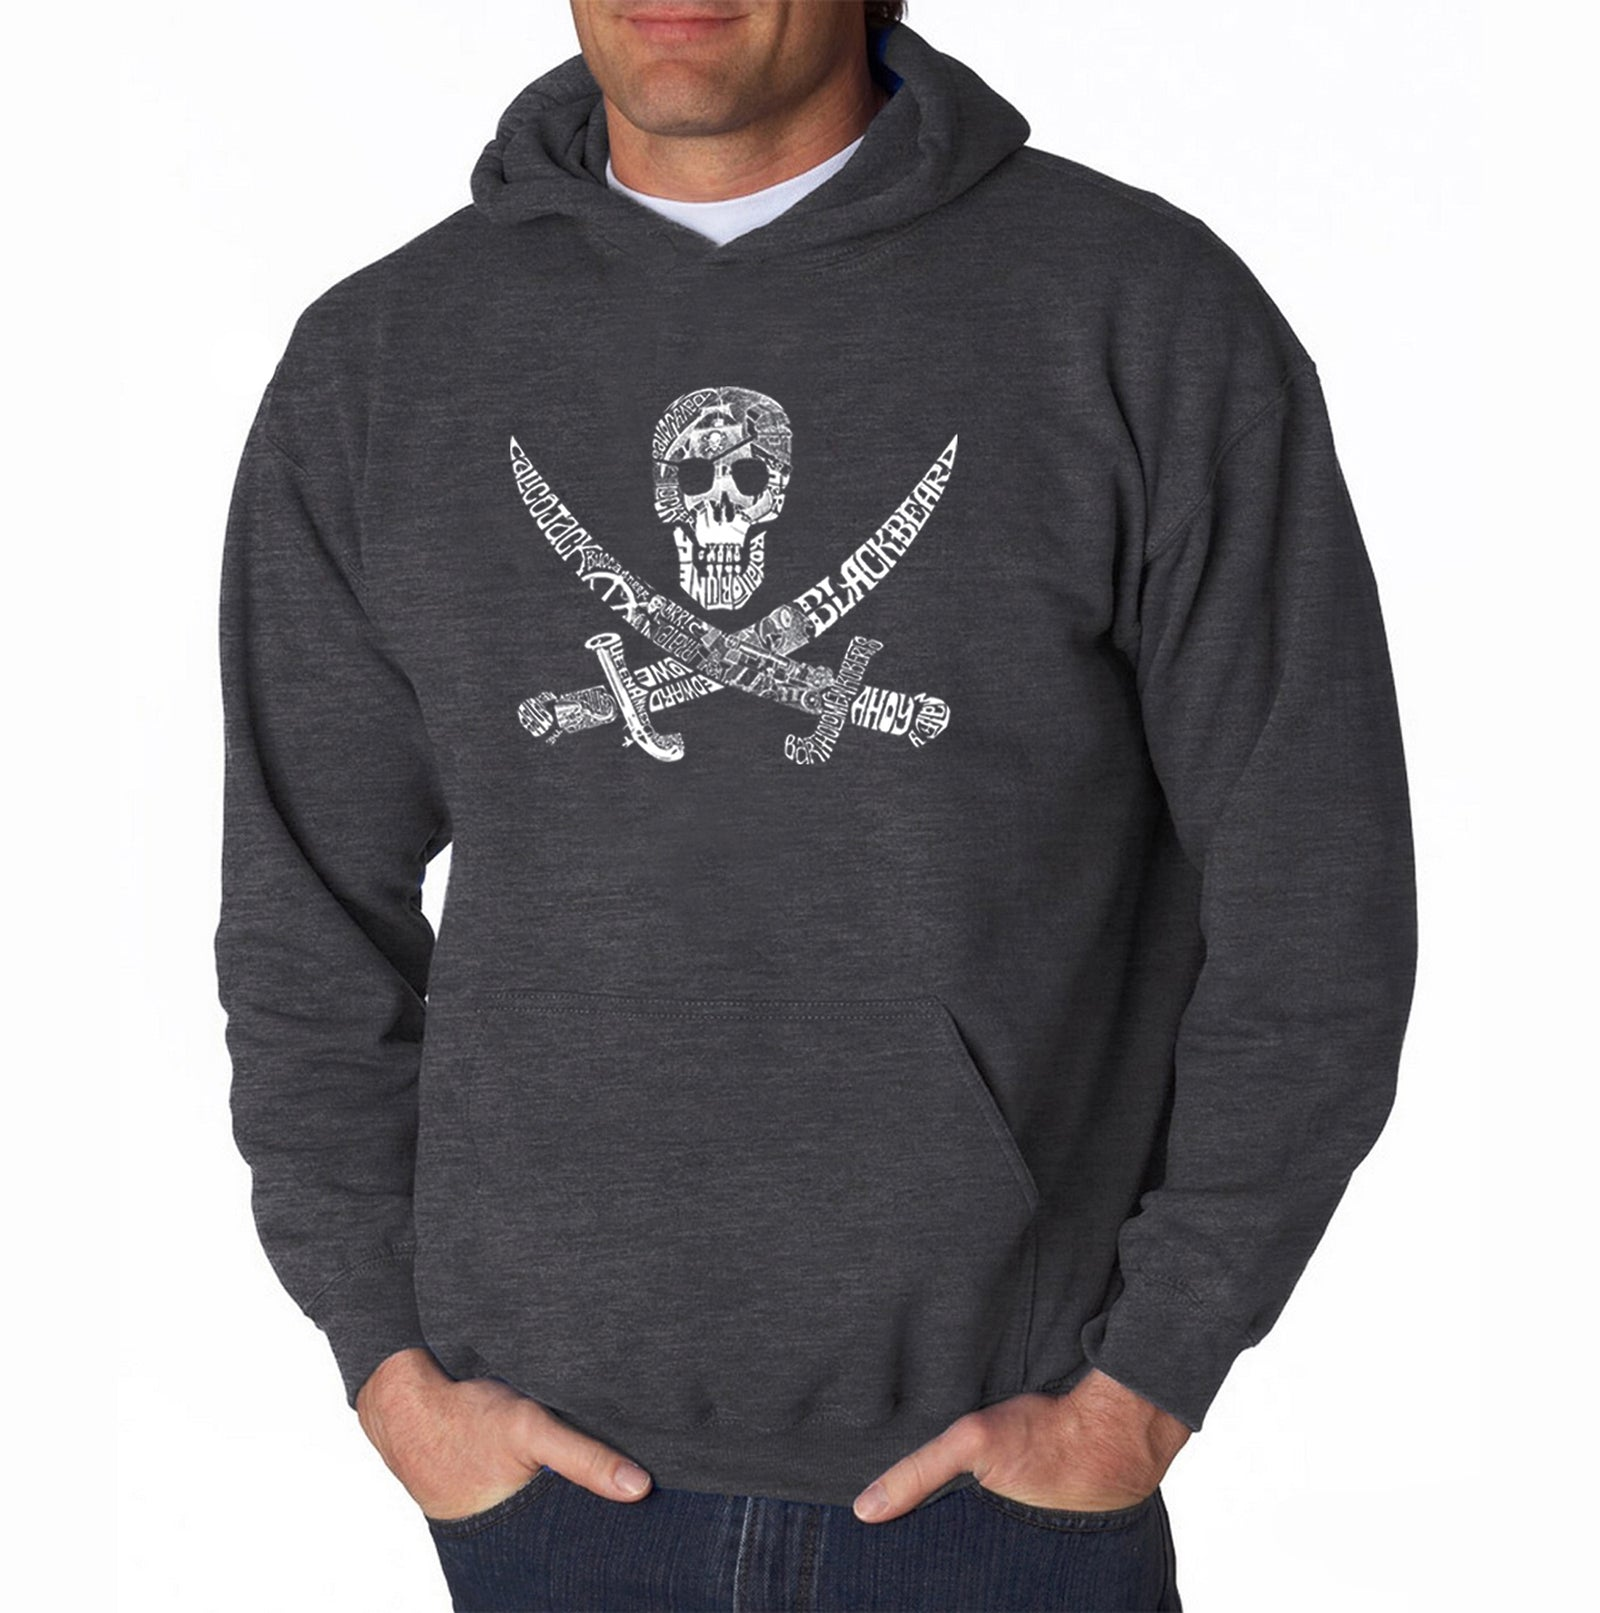 Men's Hooded Sweatshirt - PIRATE CAPTAINS, SHIPS AND IMAGERY